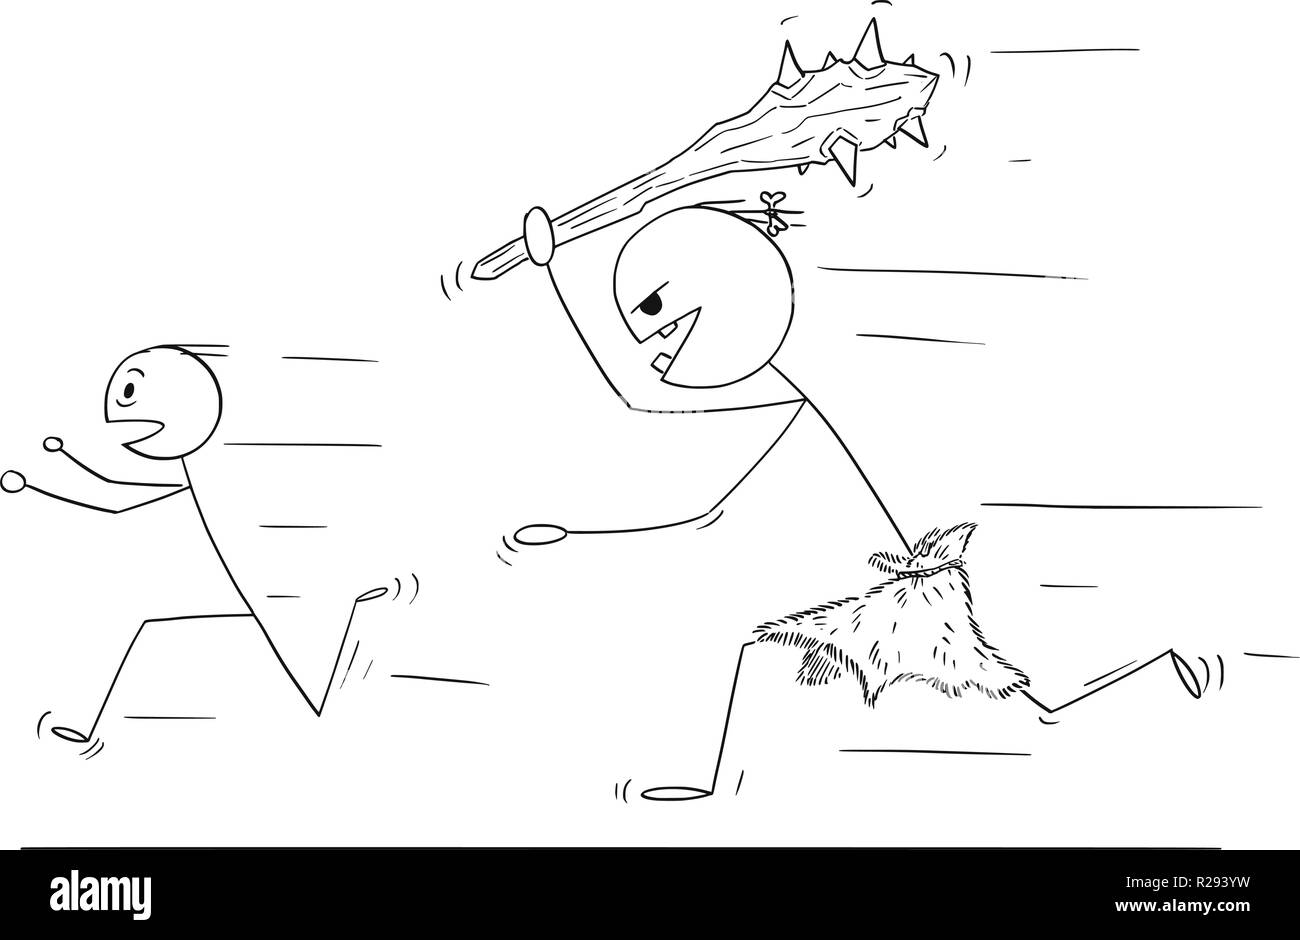 Cartoon of Scared Man Running Away From Caveman or Giant Stock Vector